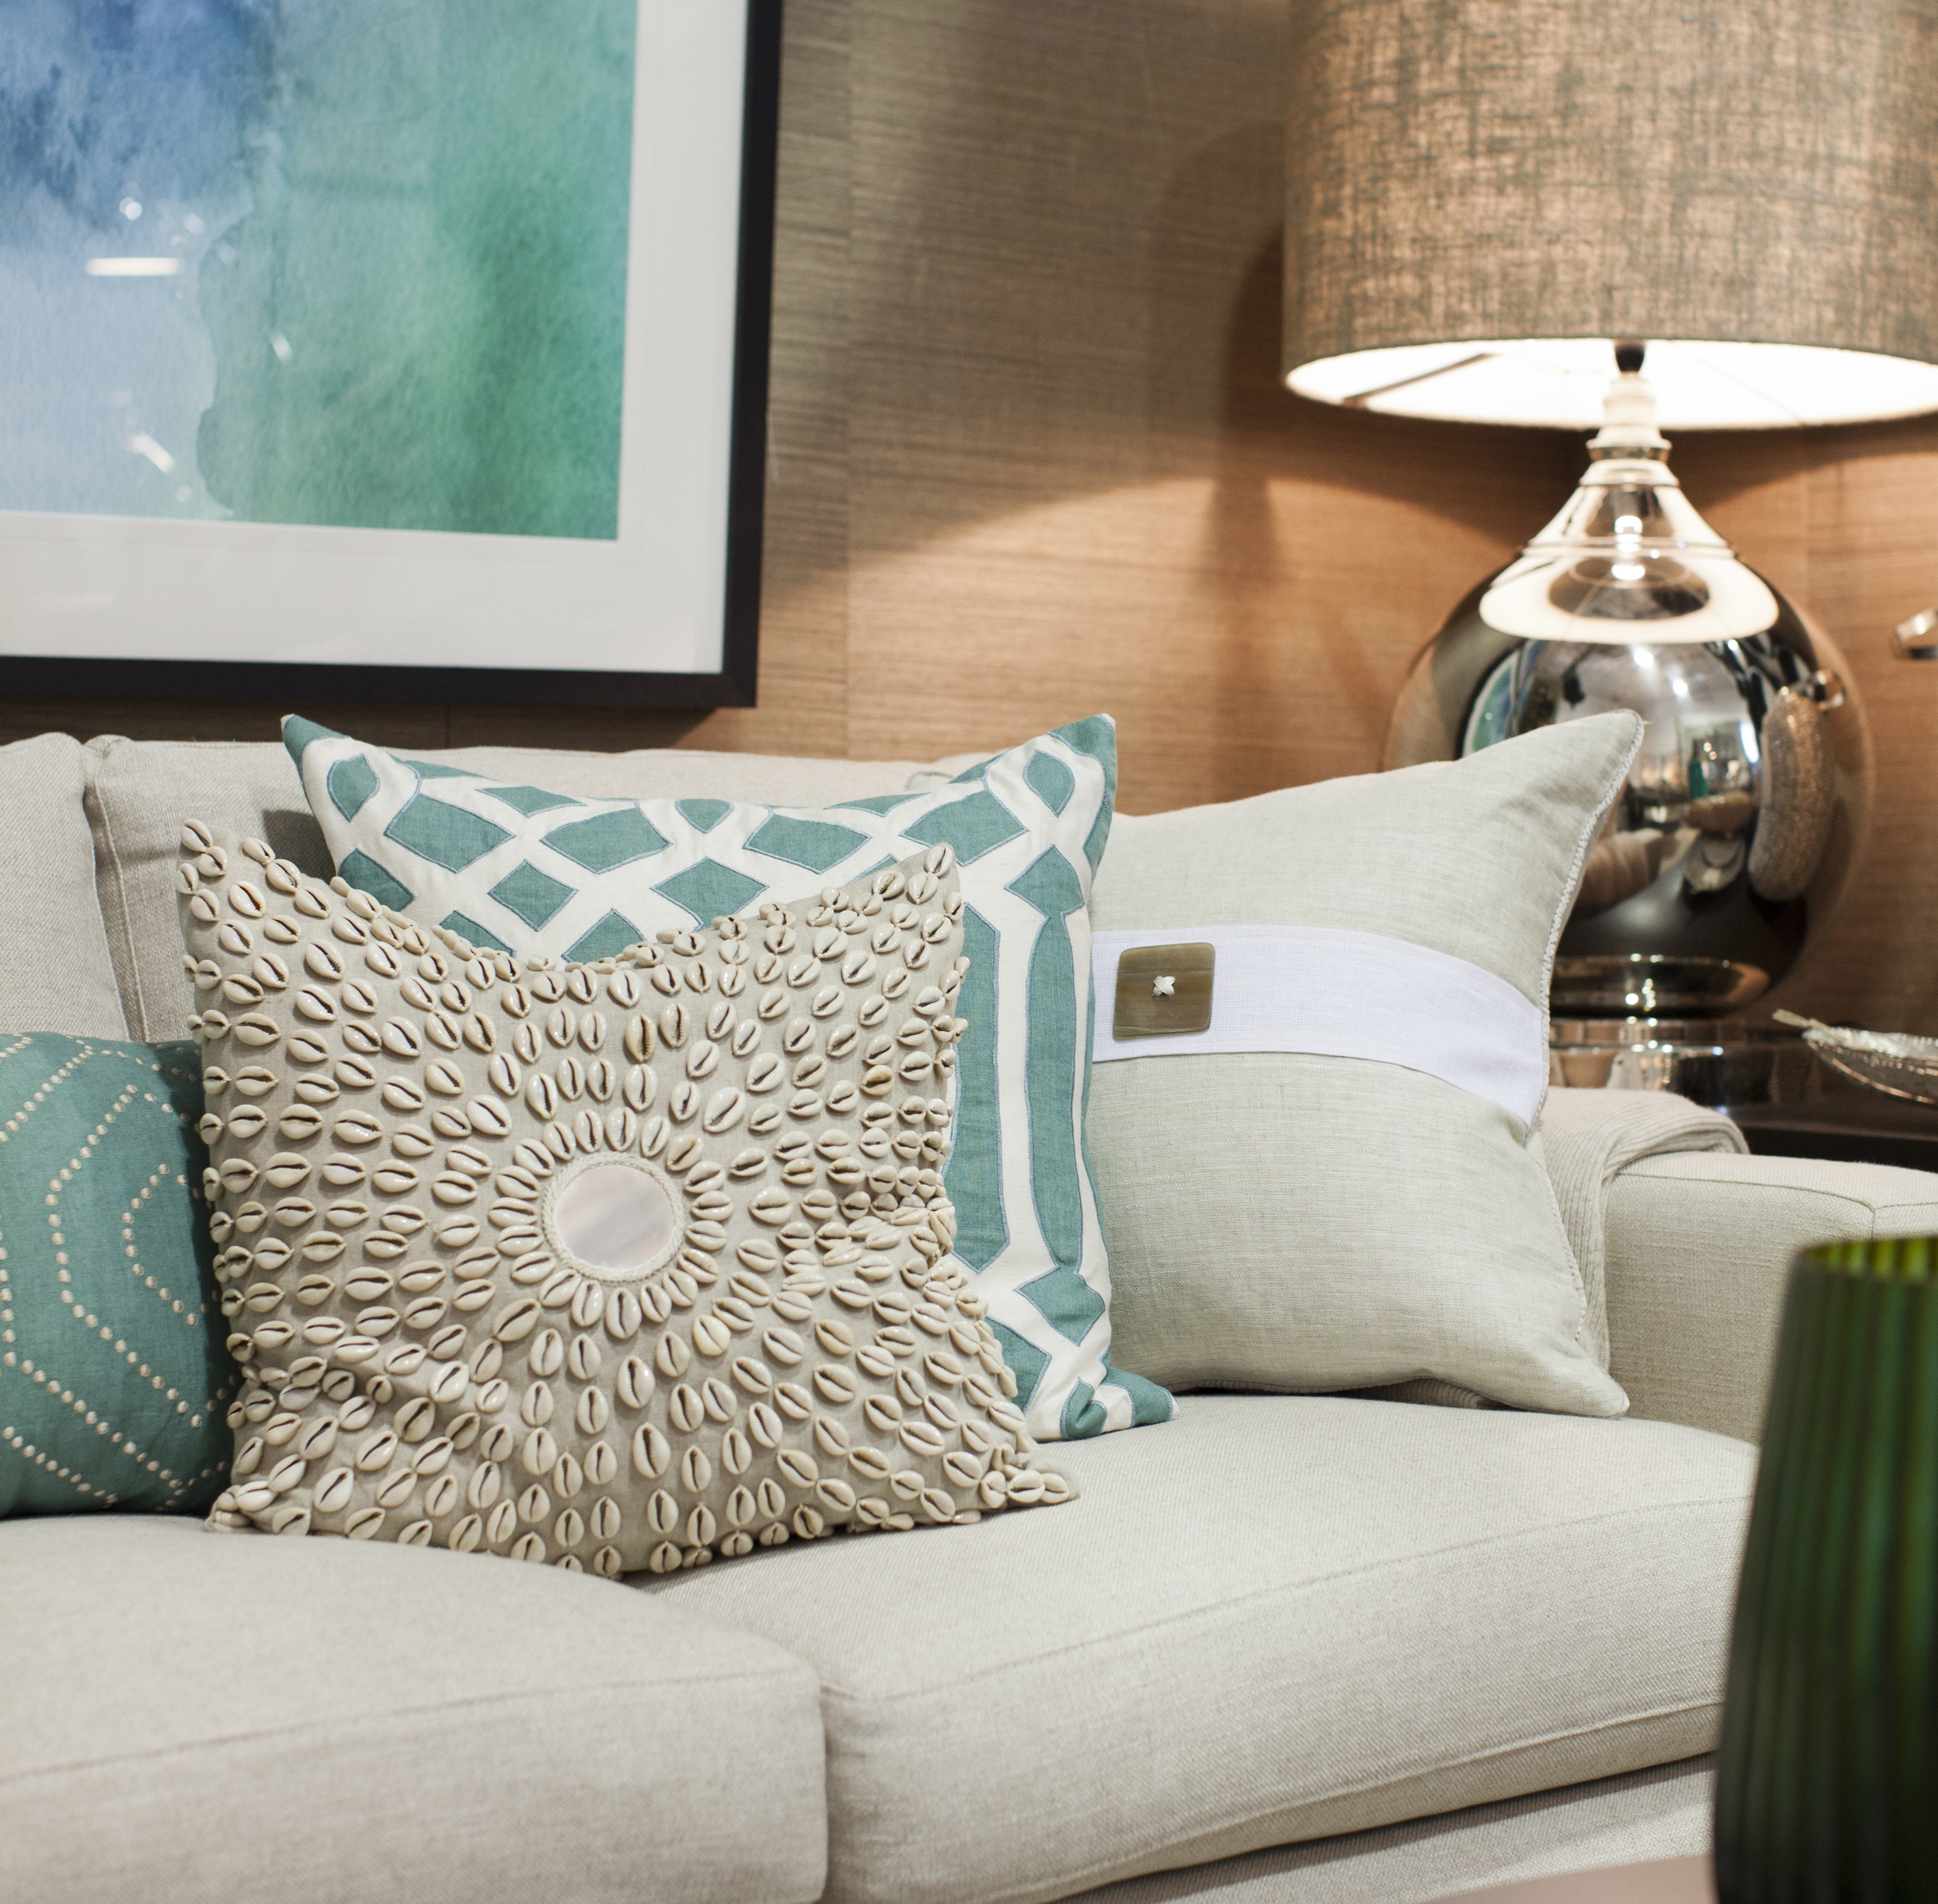 Coastal Decor - Cushions, Couch and Lamp